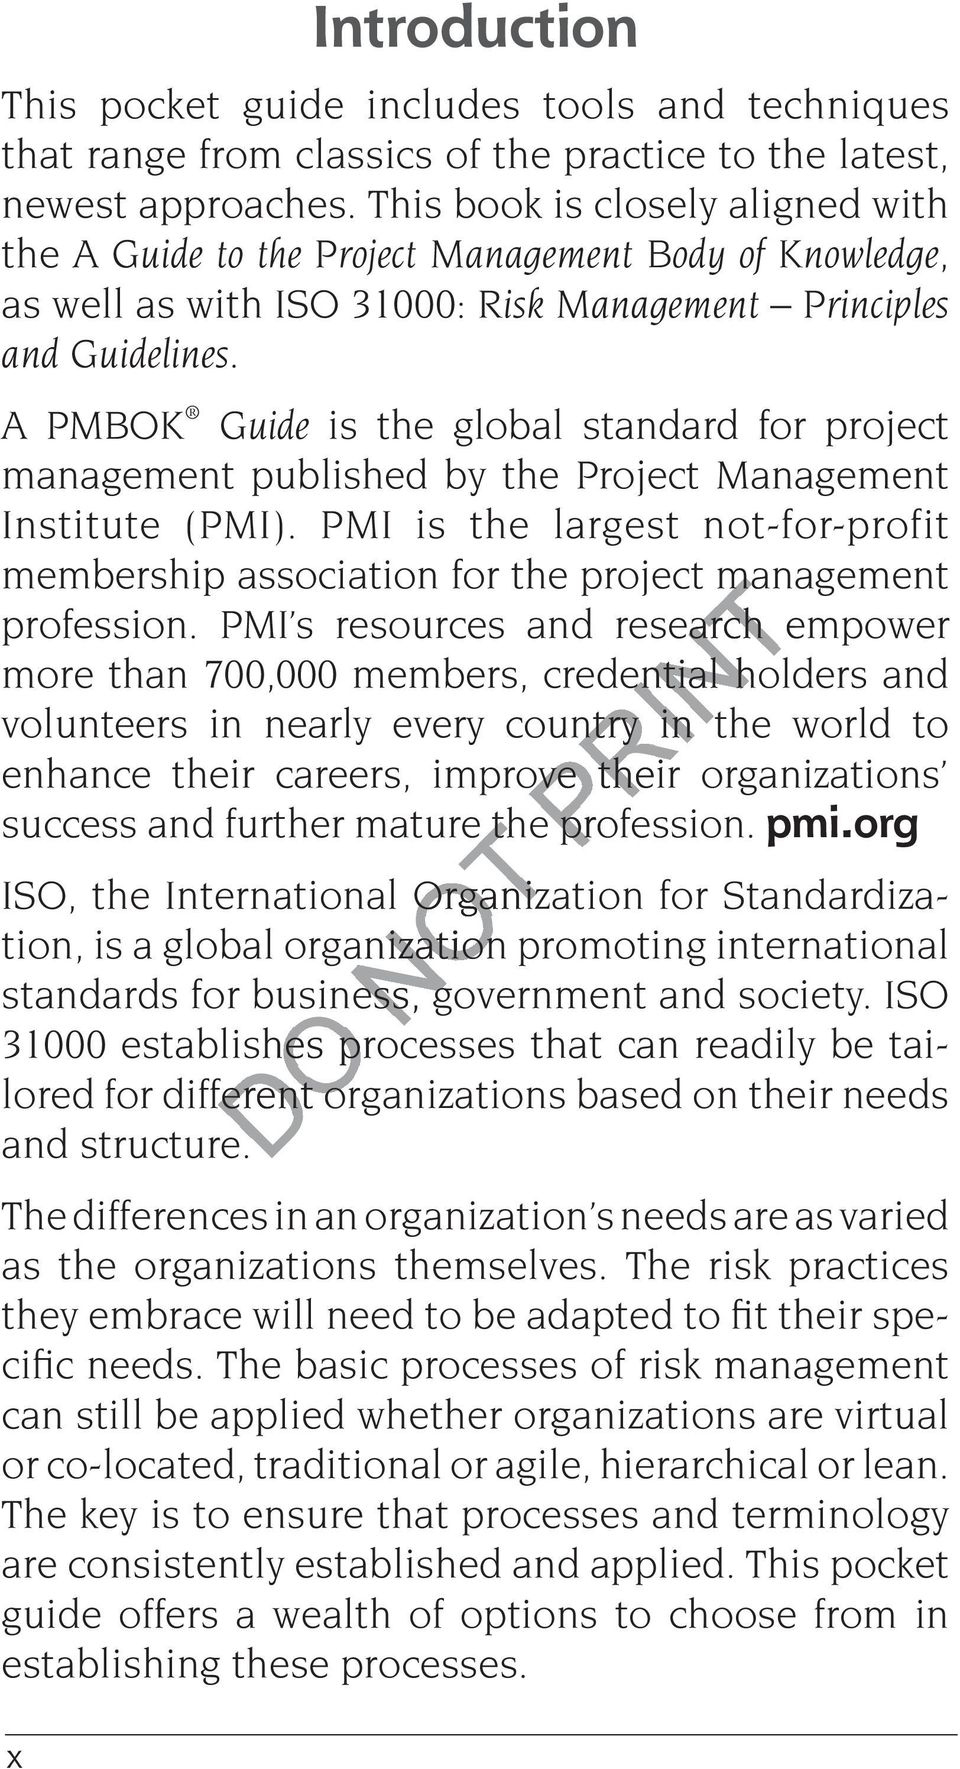 A PMBOK Guide is the global standard for project management published by the Project Management Institute (PMI).